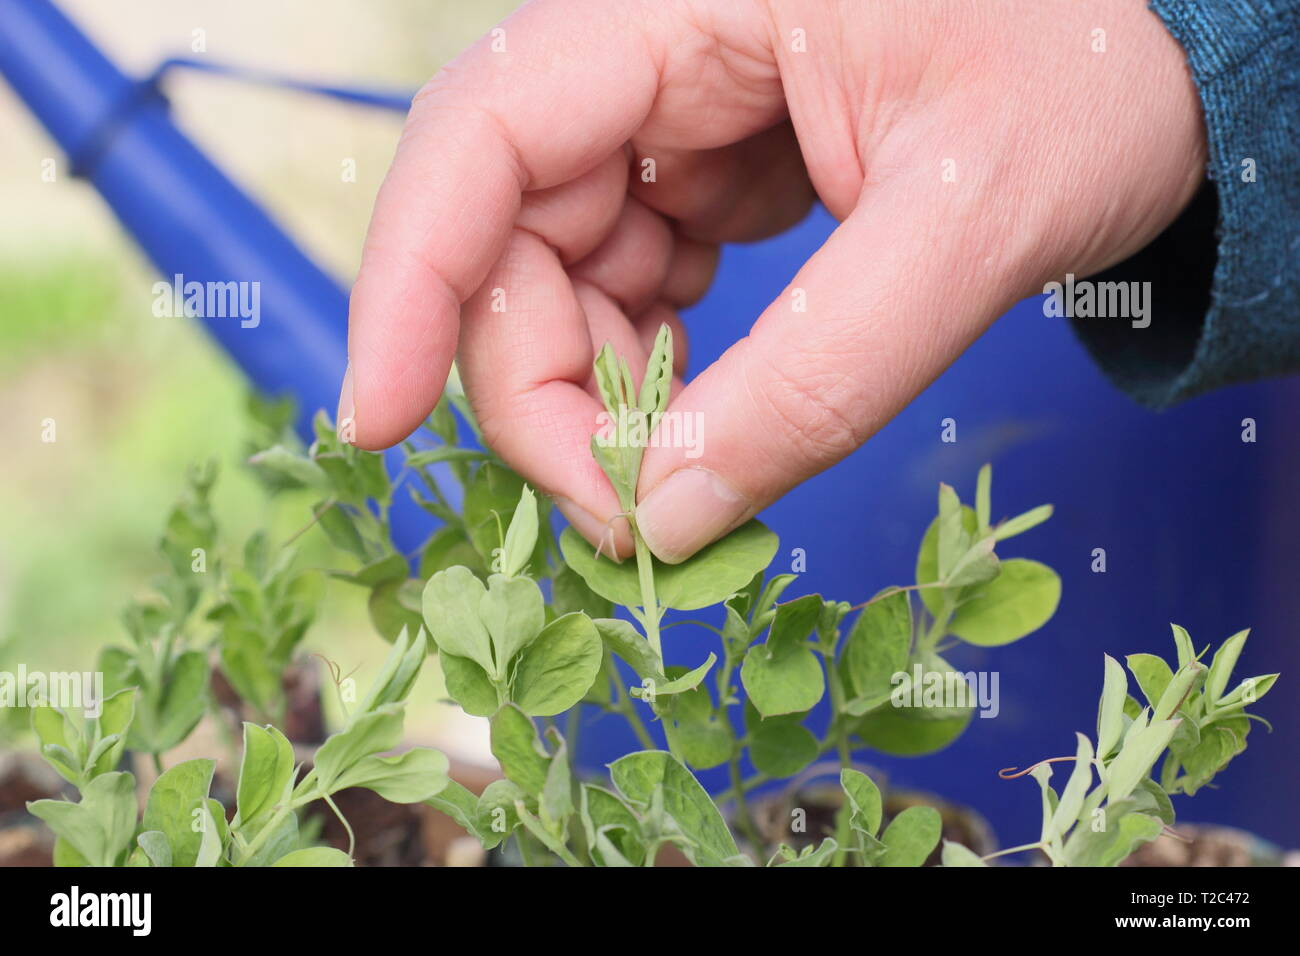 Lathyrus odoratus 'Painted Lady'. Pinching out tips of sweet pea seedlings to encourage strong, bushy growth with more flower stems - March. UK - Stock Image